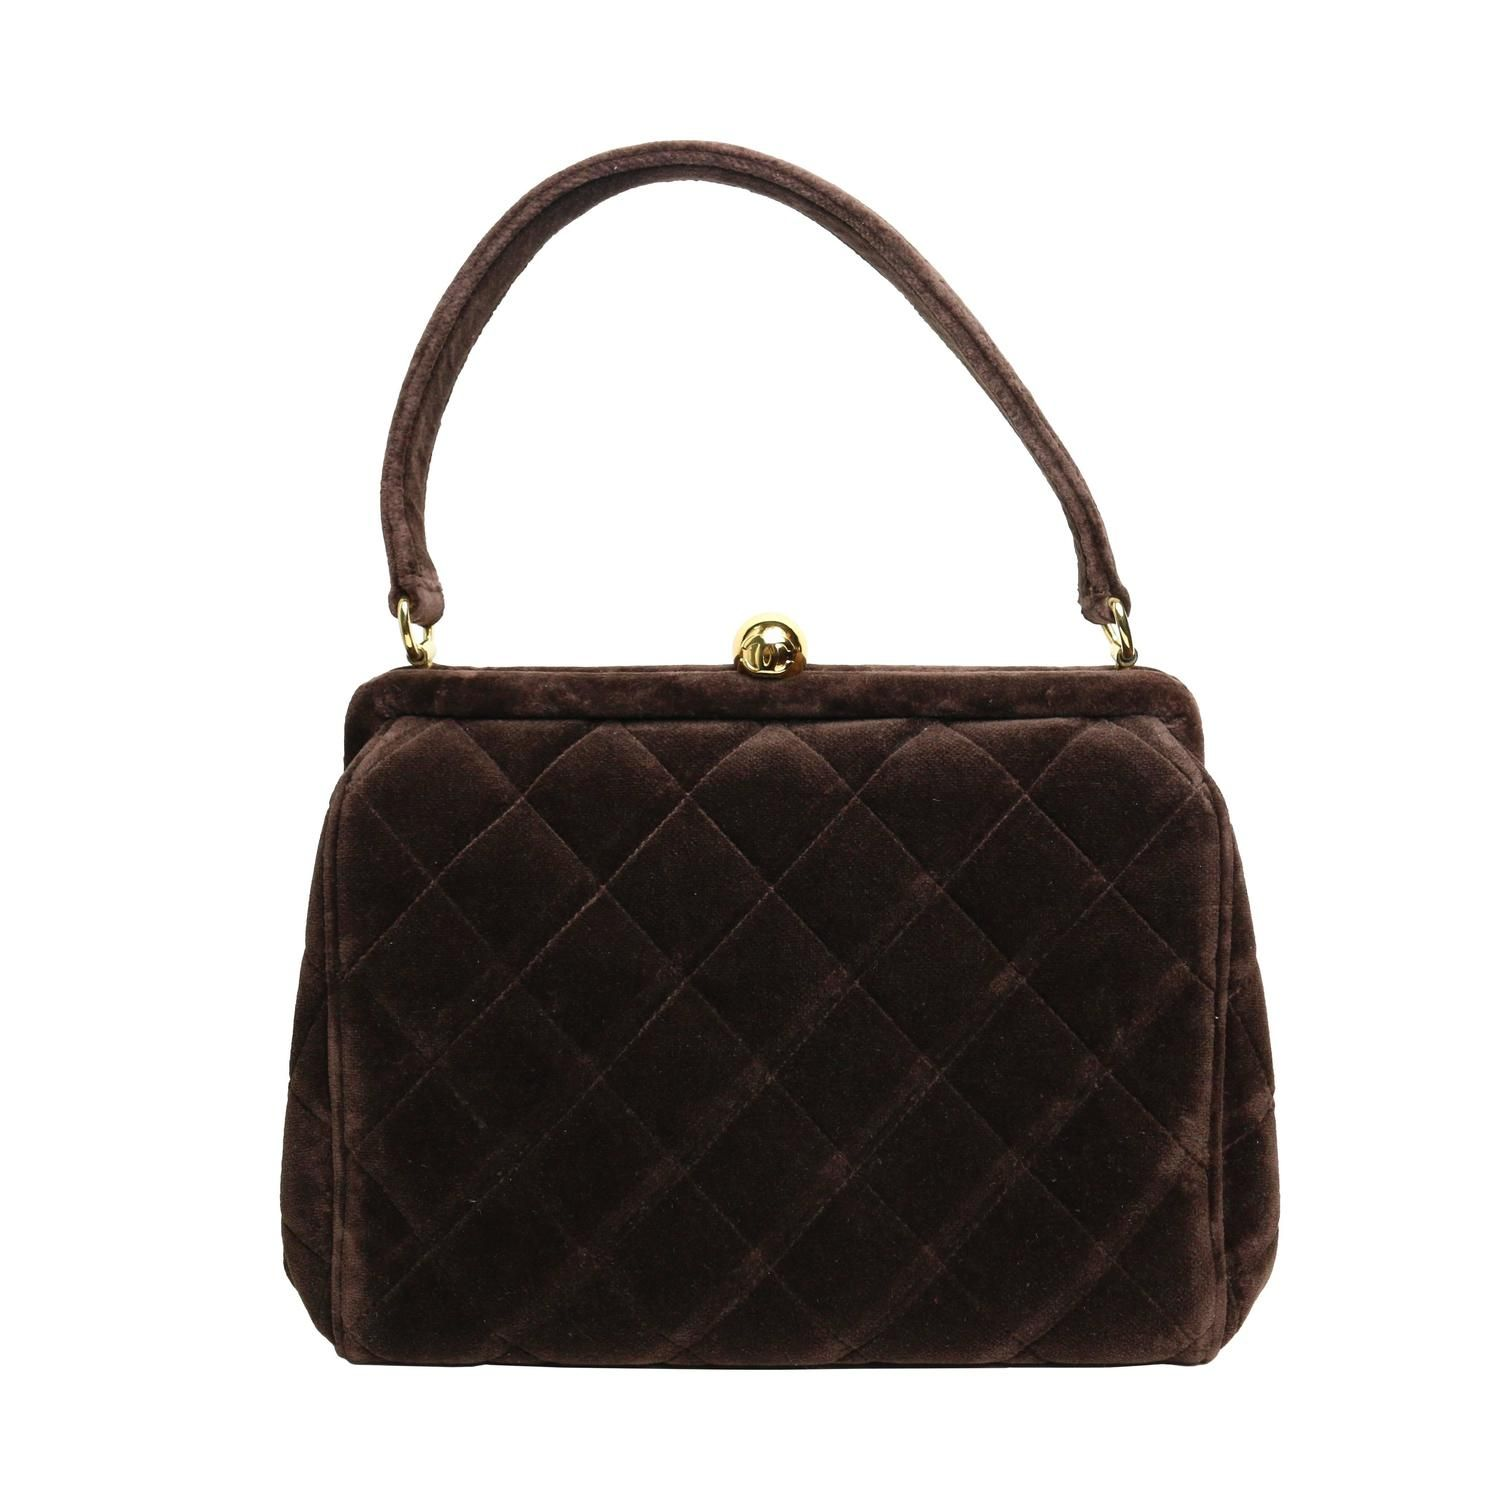 Chanel Brown Velvet Quilted Handbag | Velvet quilt, Vintage tops ... : quilted purses and handbags - Adamdwight.com